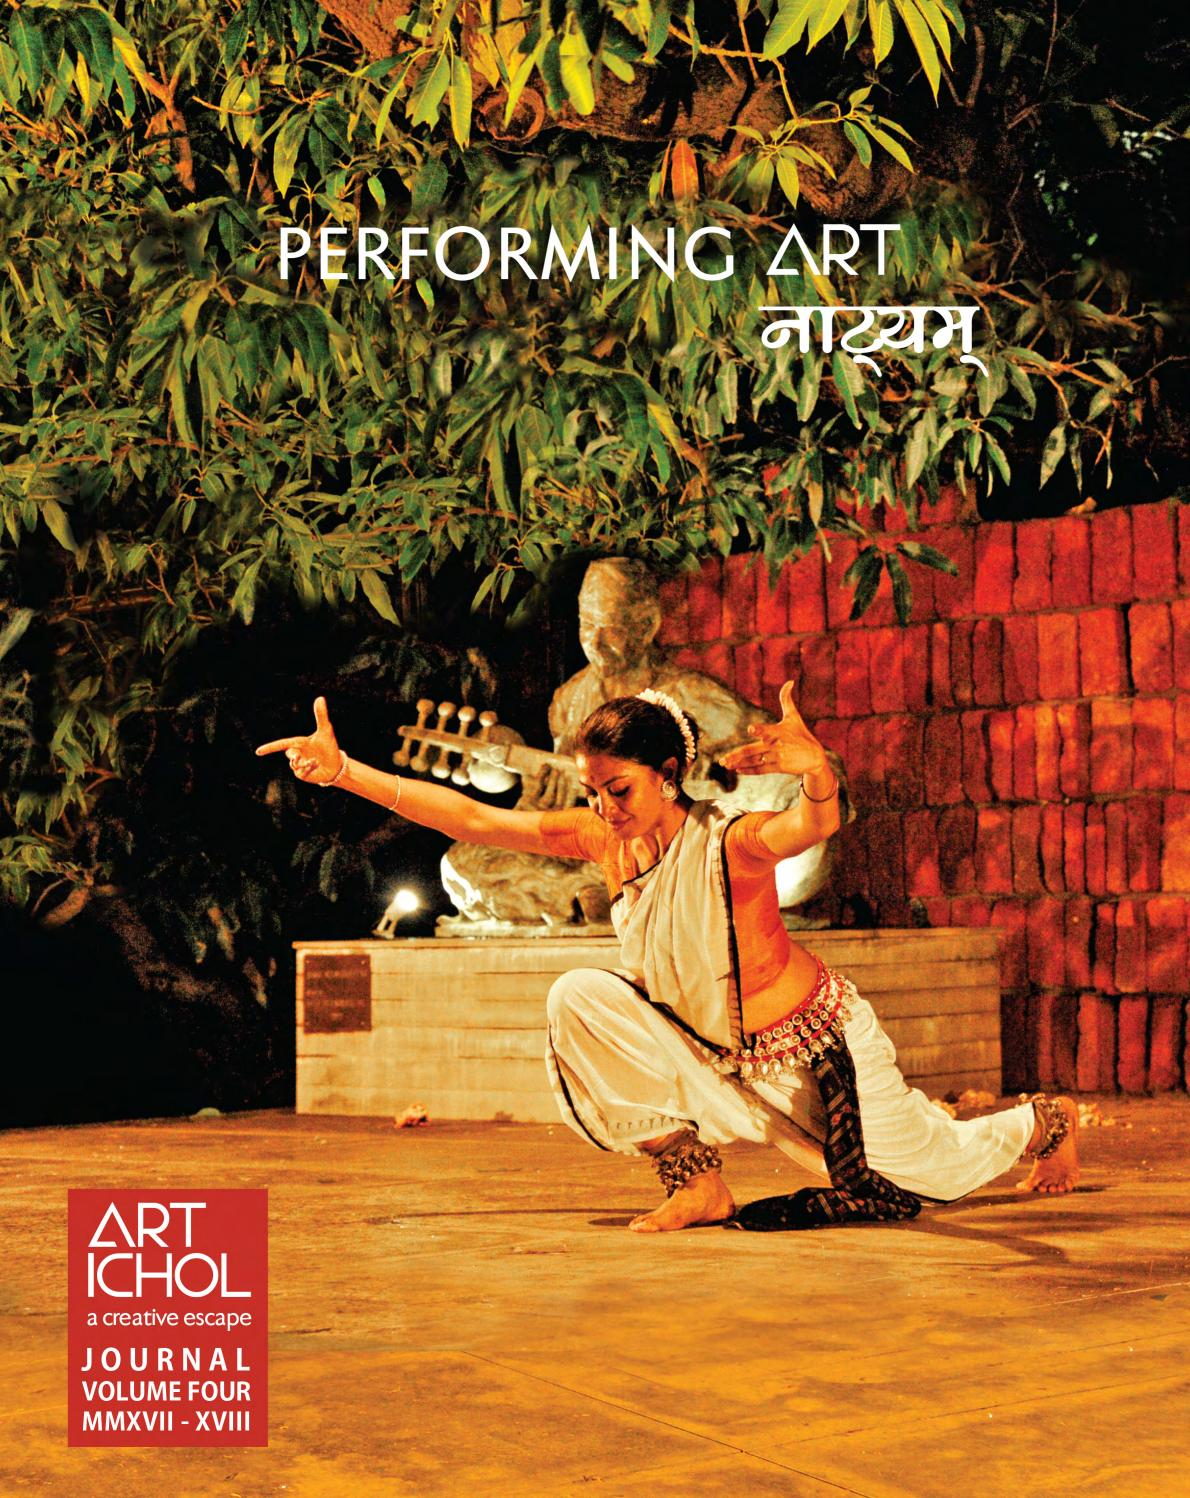 Art Ichol Journal - 4th Volume - Performing Art - Natyam by